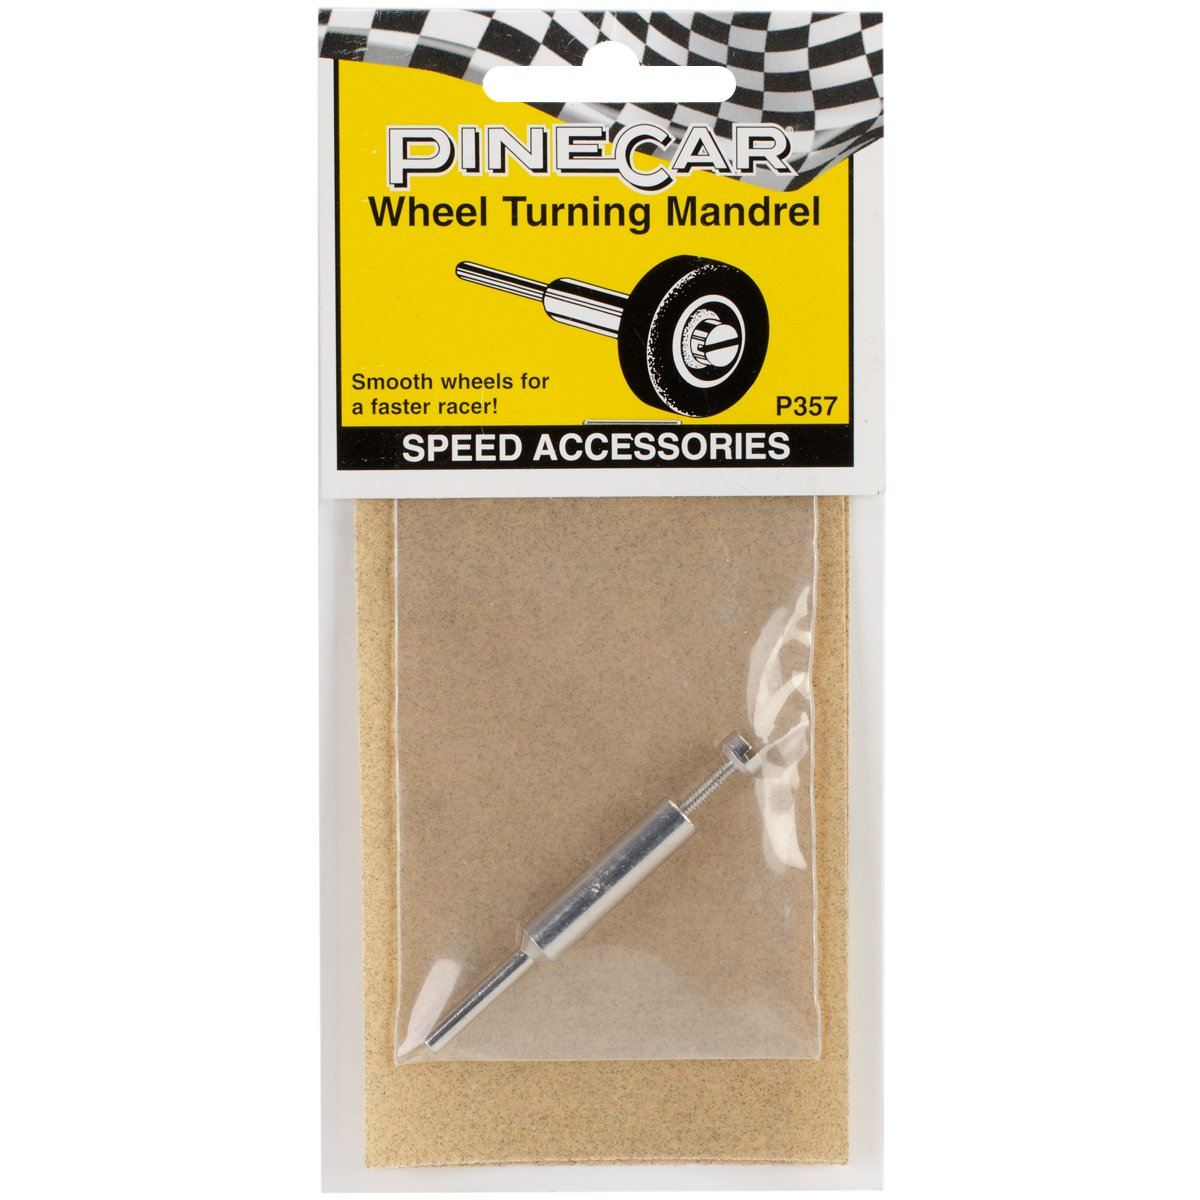 Wheel Turning Mandrel Woodland Scenics P357 Pine Car Derby Speed Accessories